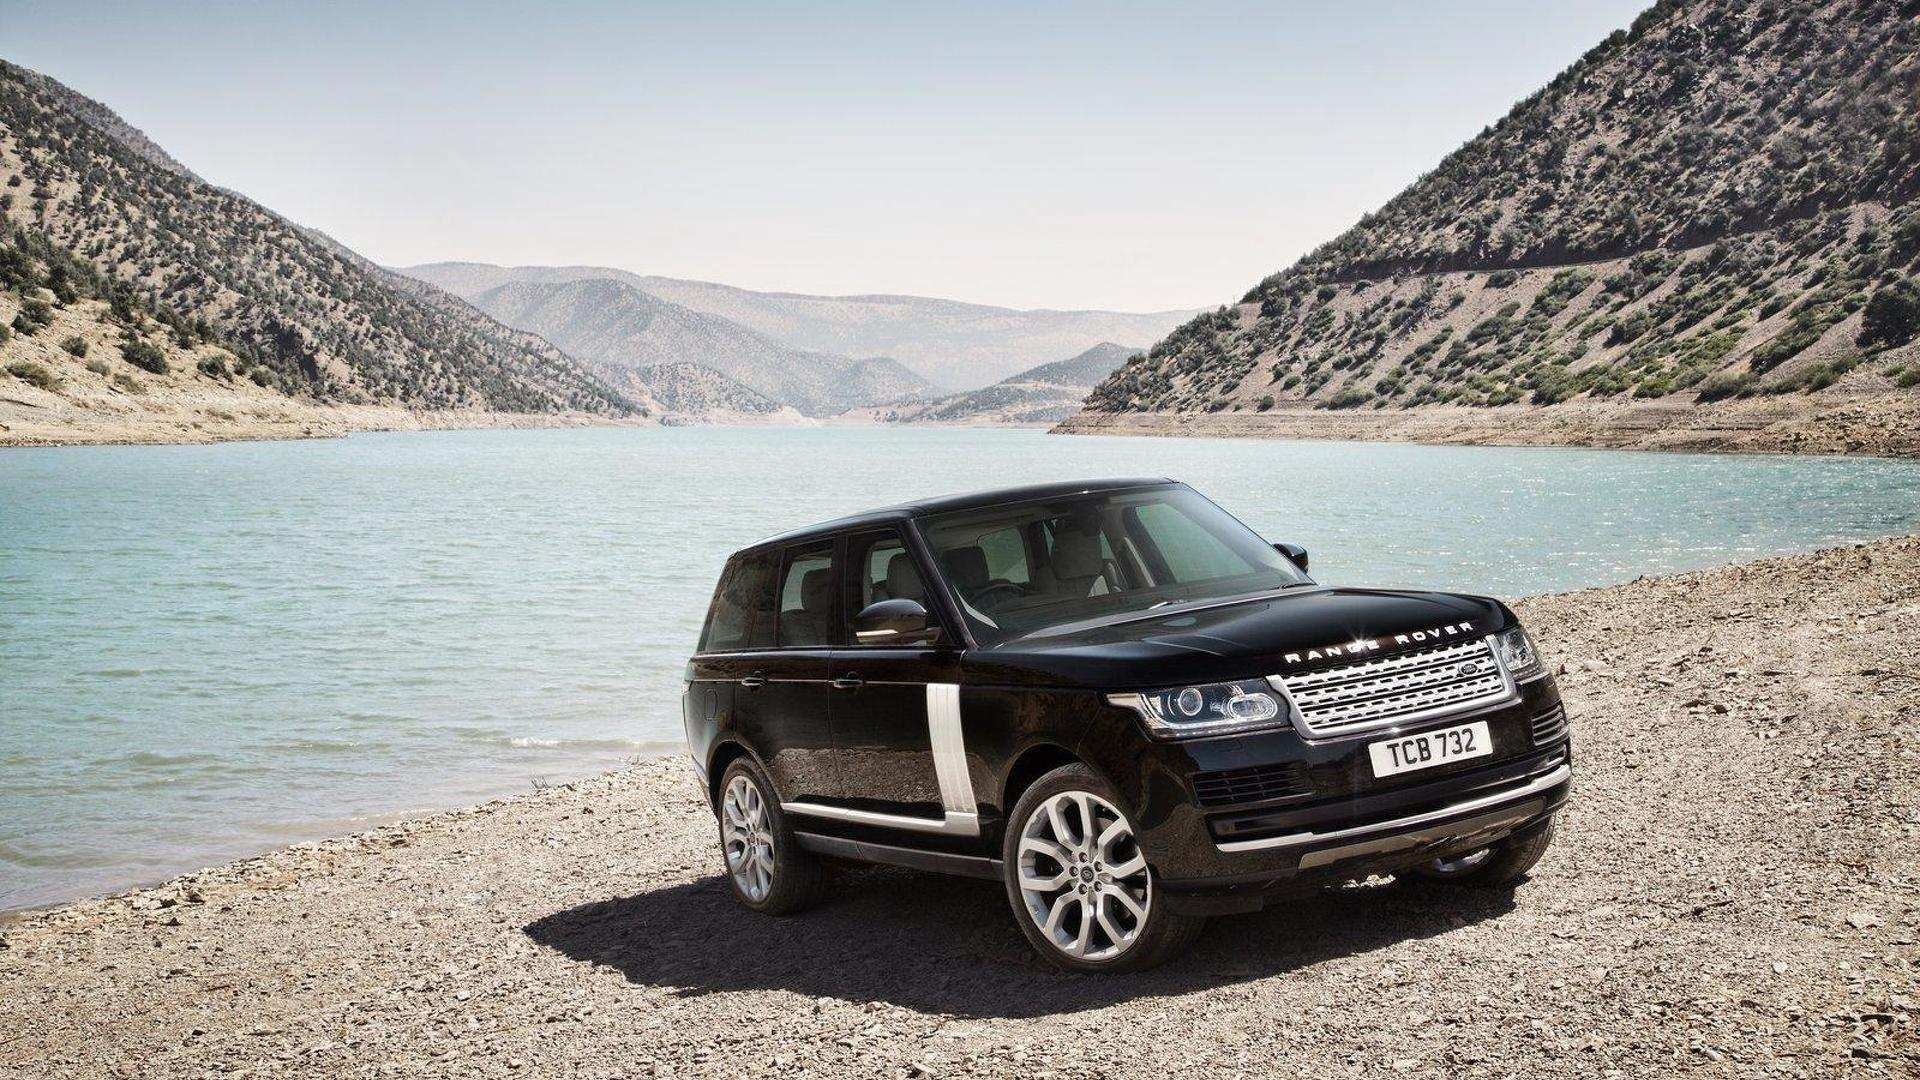 30 Best Review 2020 Land Rover Range Rover Configurations with 2020 Land Rover Range Rover